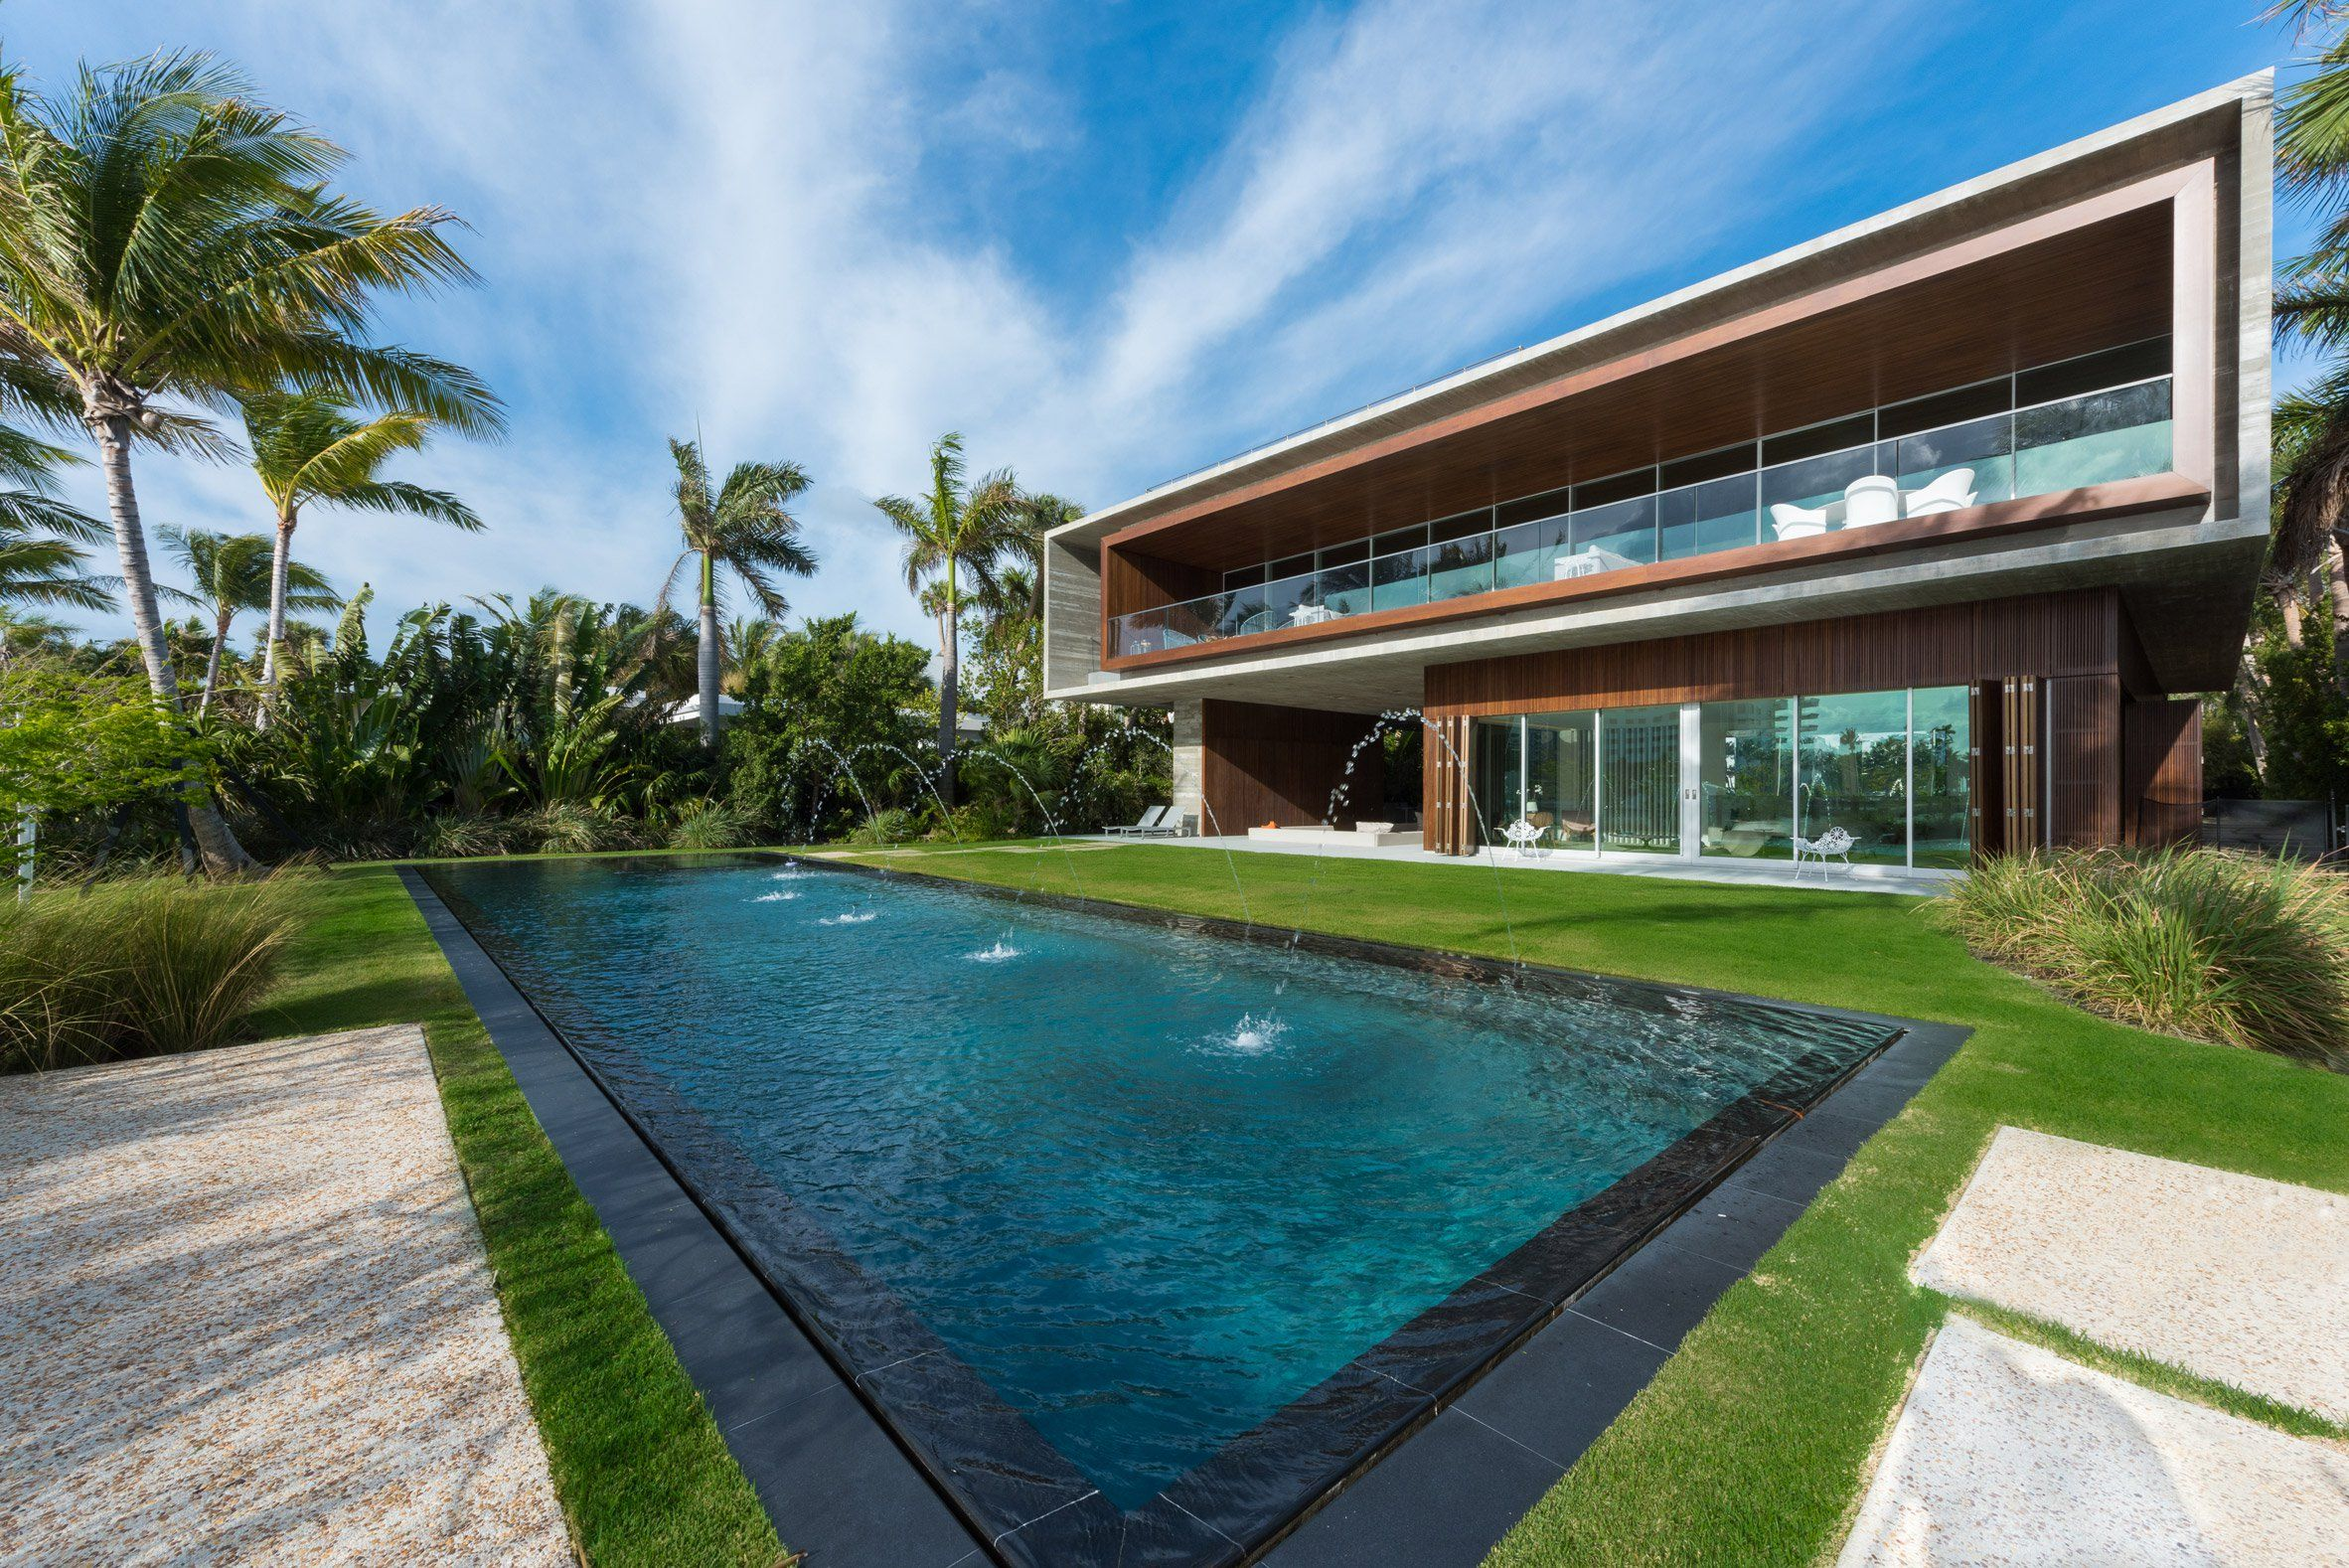 Brazilian Architect Marcio Kogan Of Studio MK27 Has Designed This Luxurious  Miami Beach Residence With A